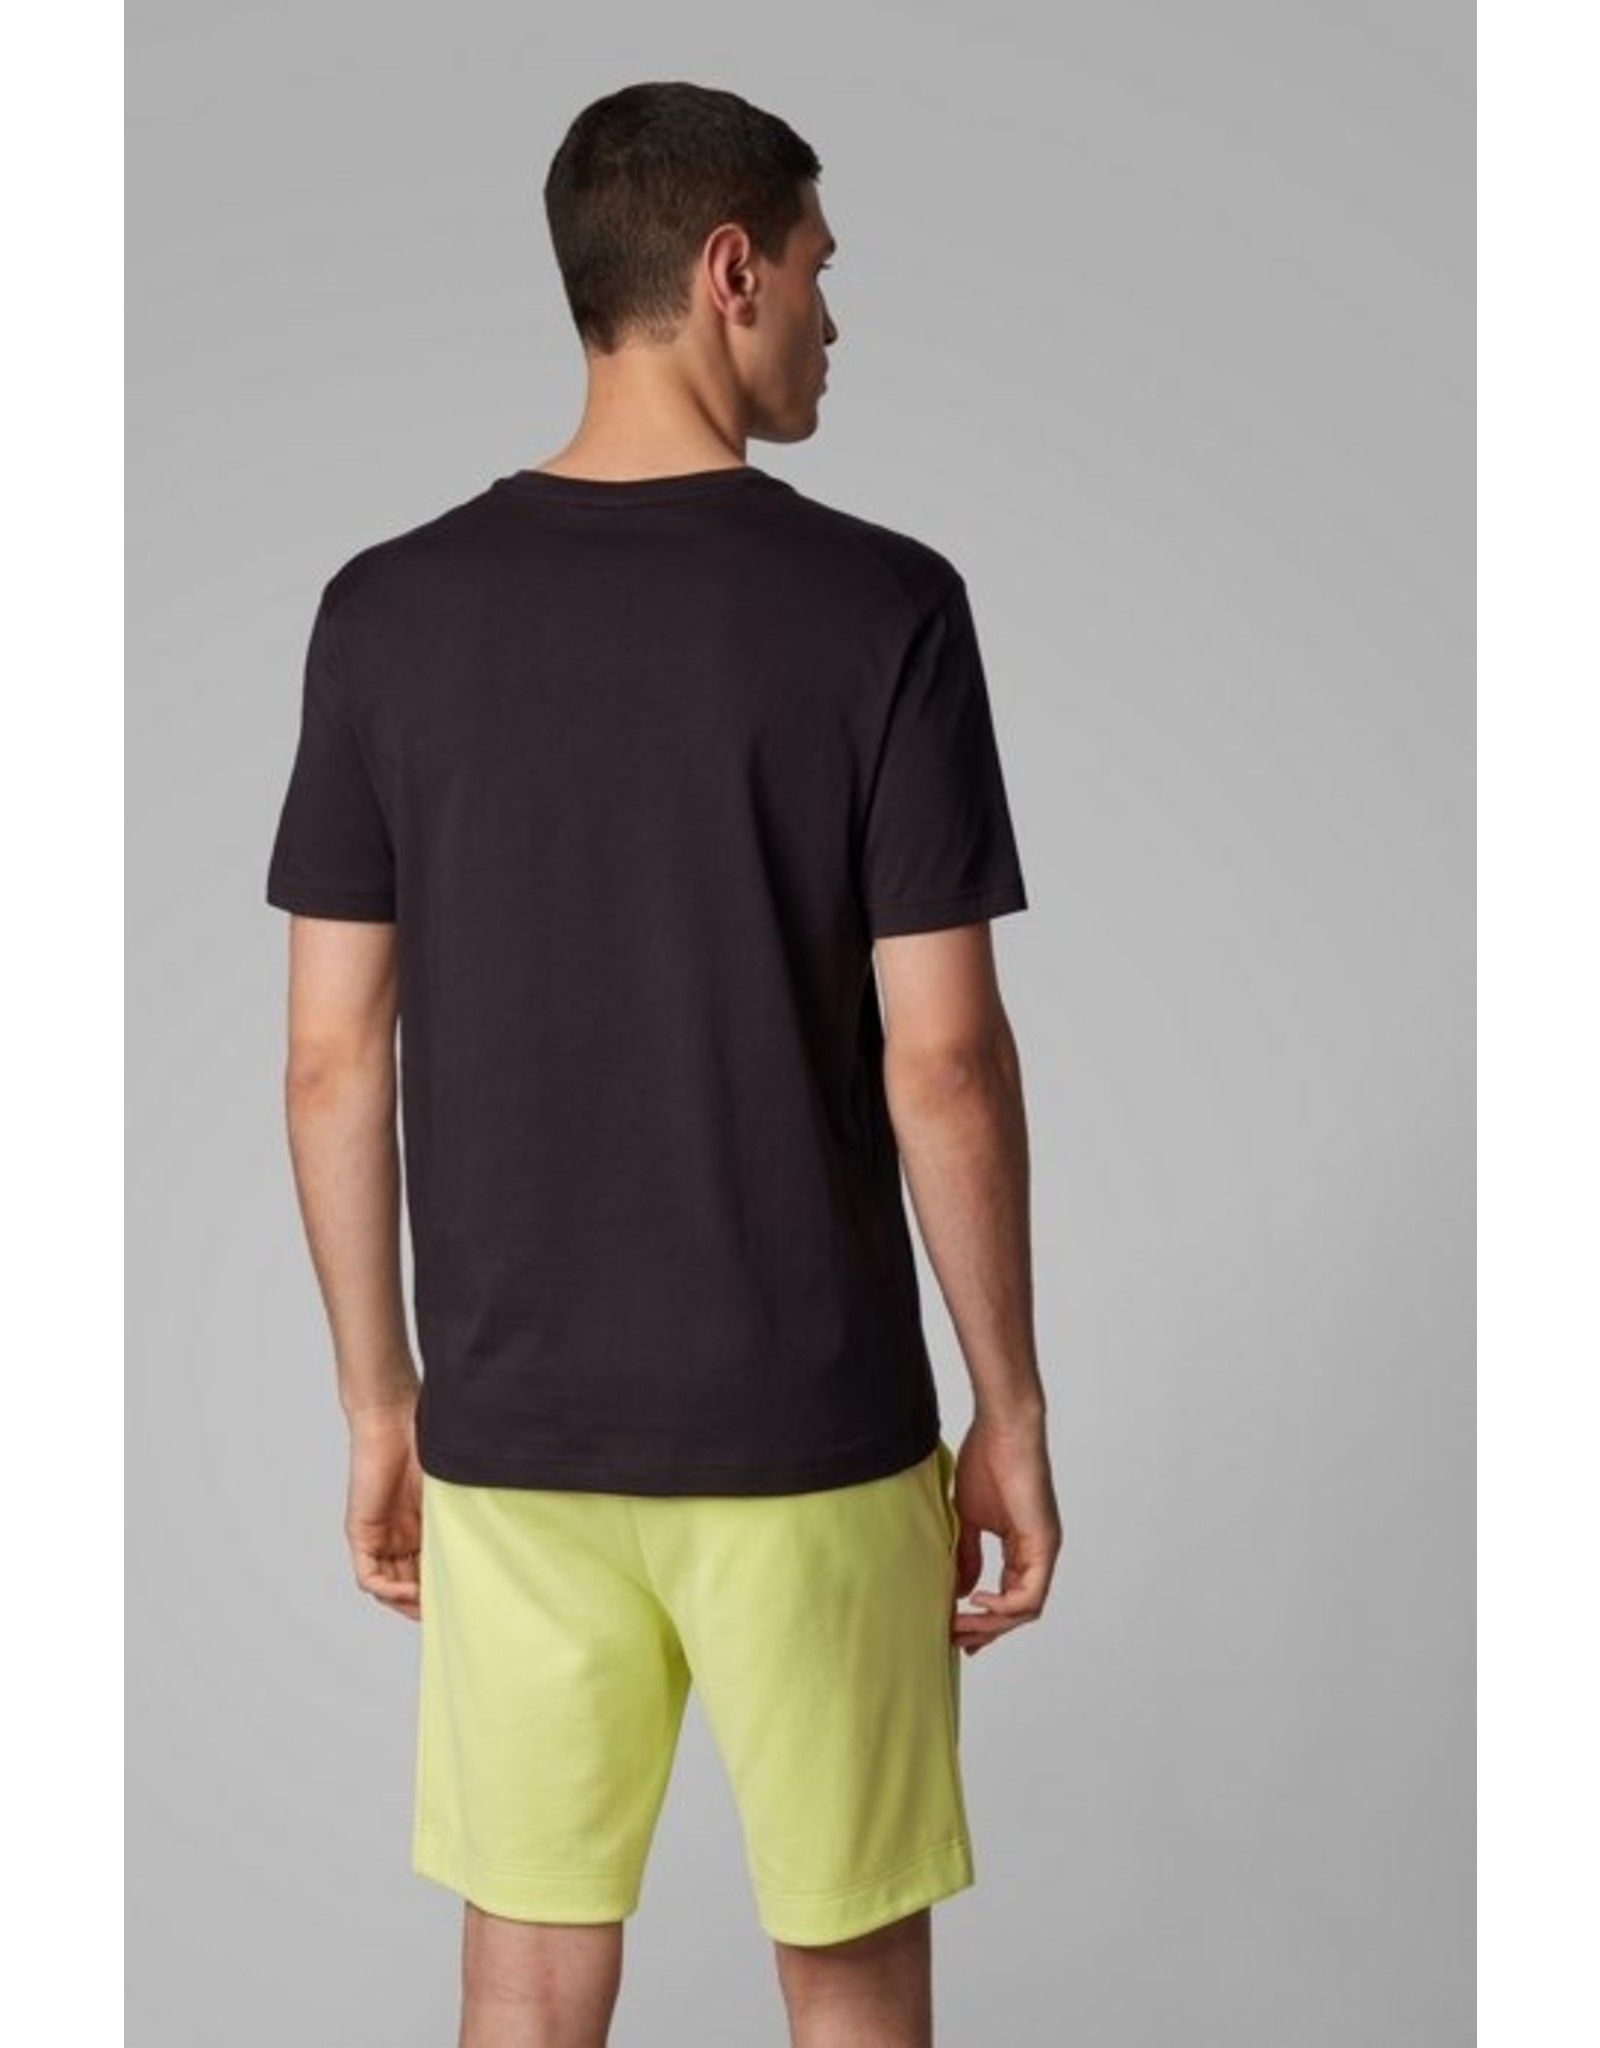 BOSS ATHLEISURE BOSS ATHLEISURE TEE 1